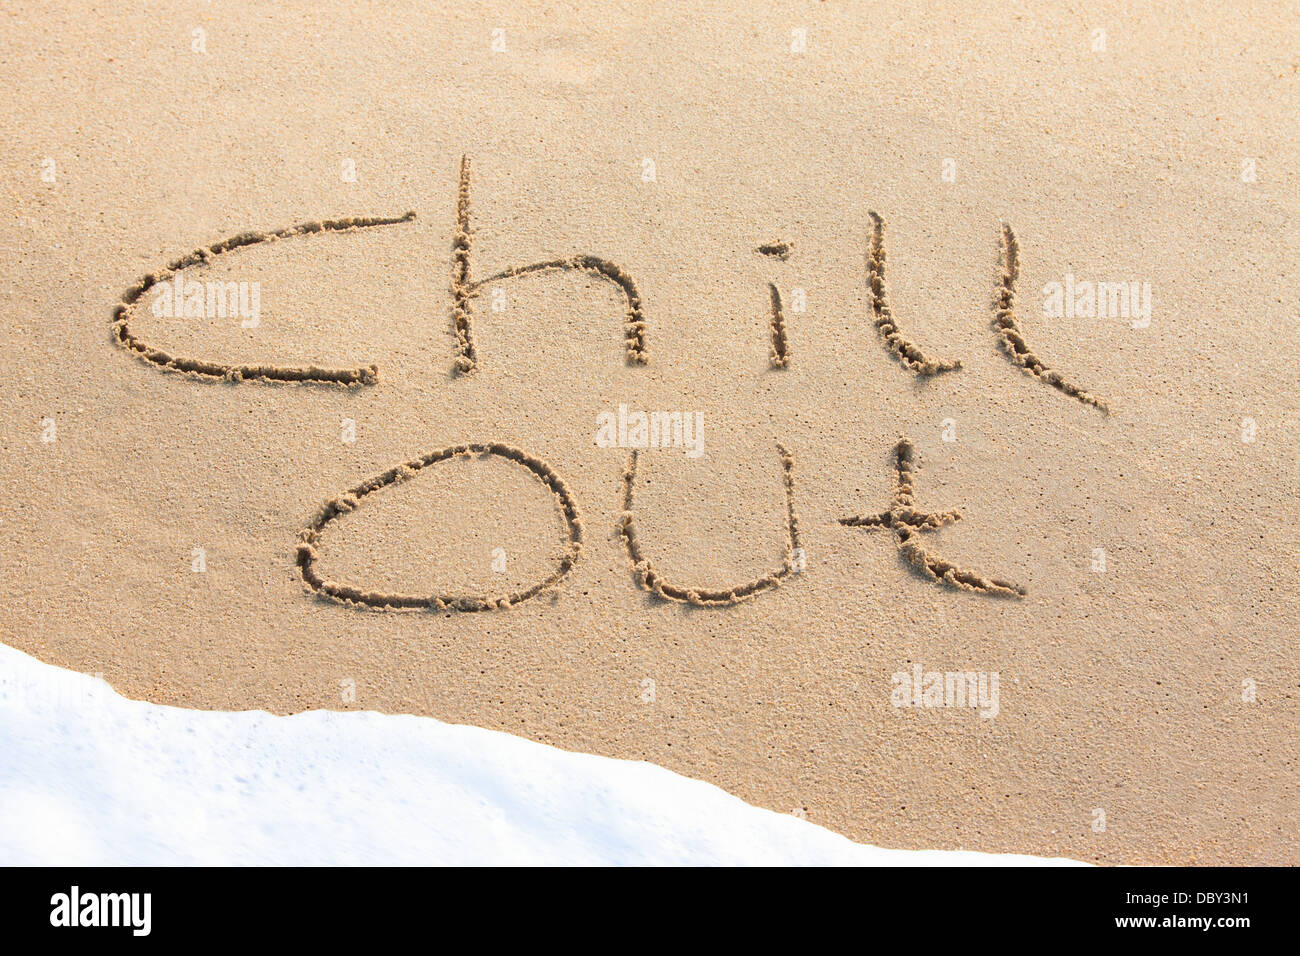 Chill out - written in the sand - Stock Image